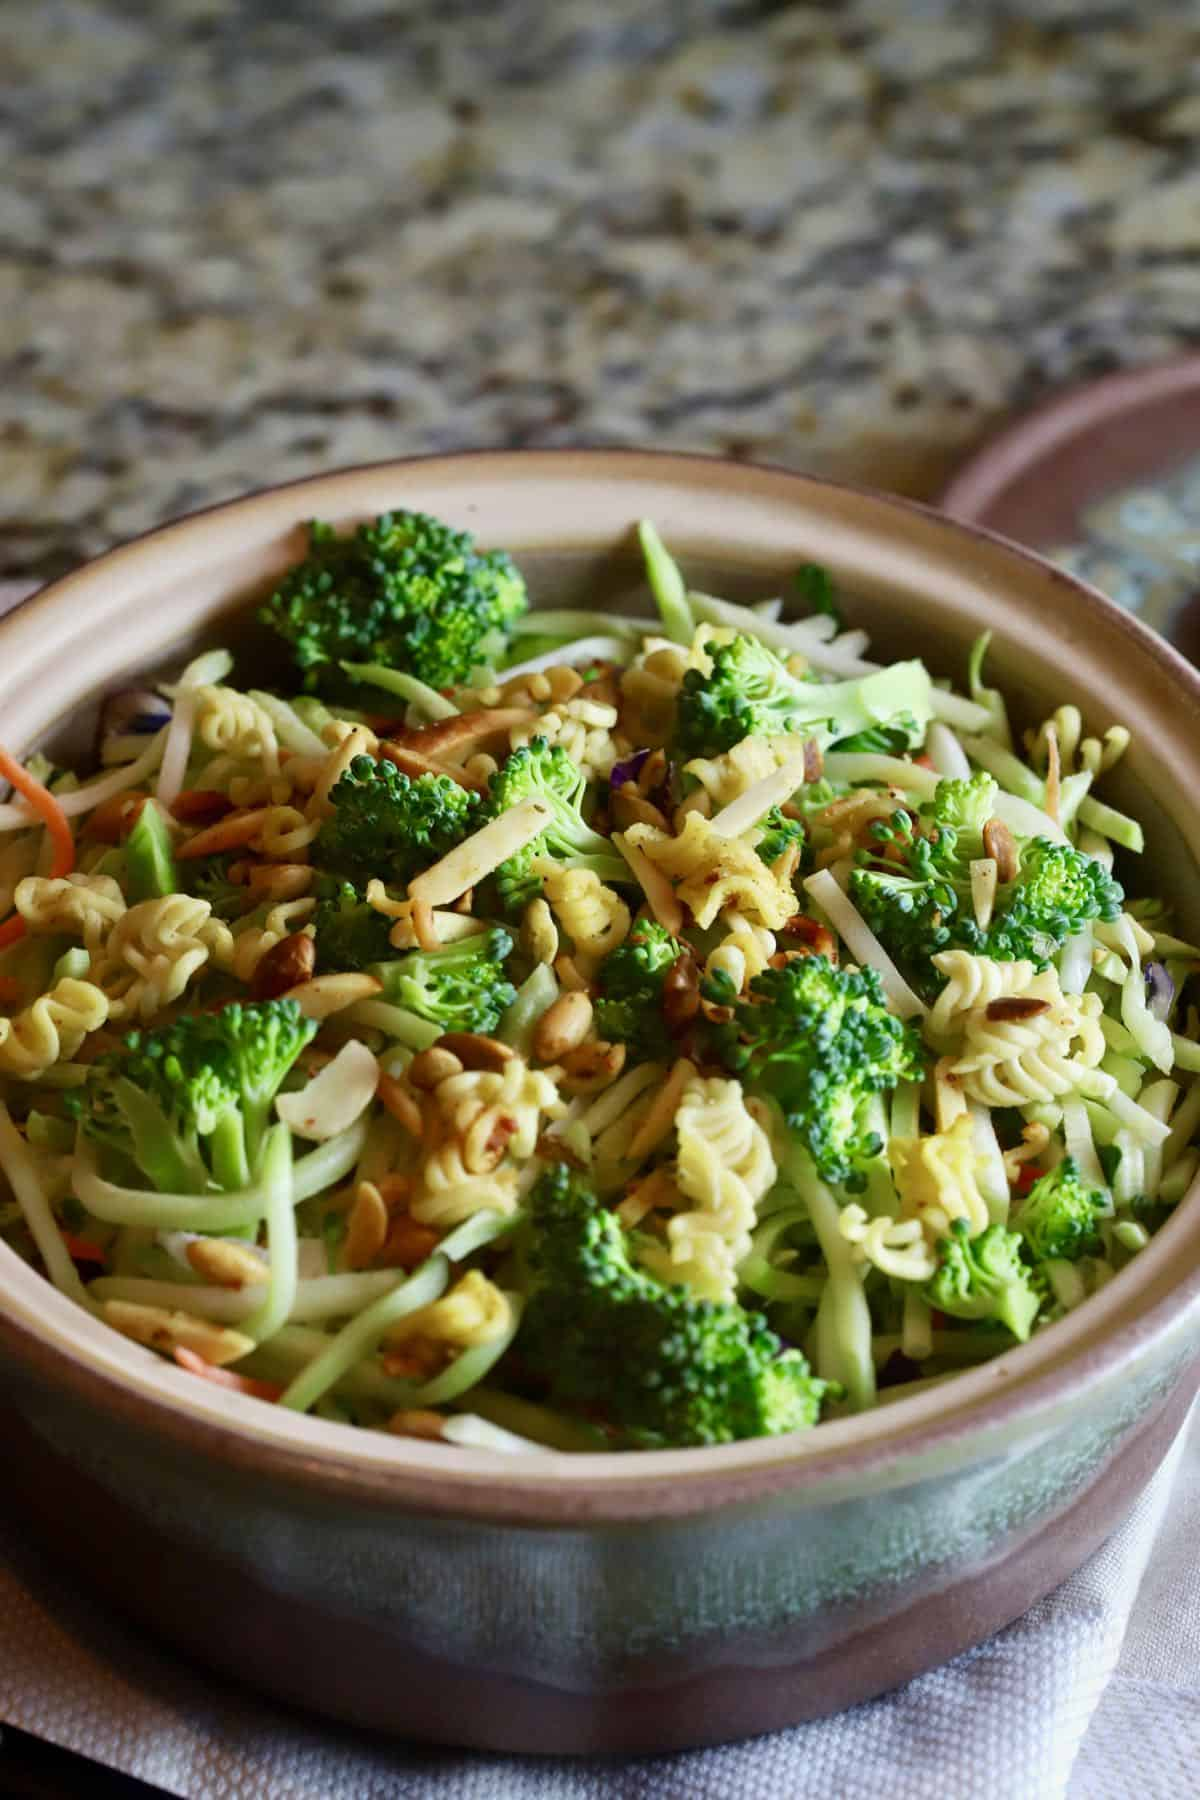 Broccoli florets, slaw and ramen noodles in a pottery bowl ready to serve.